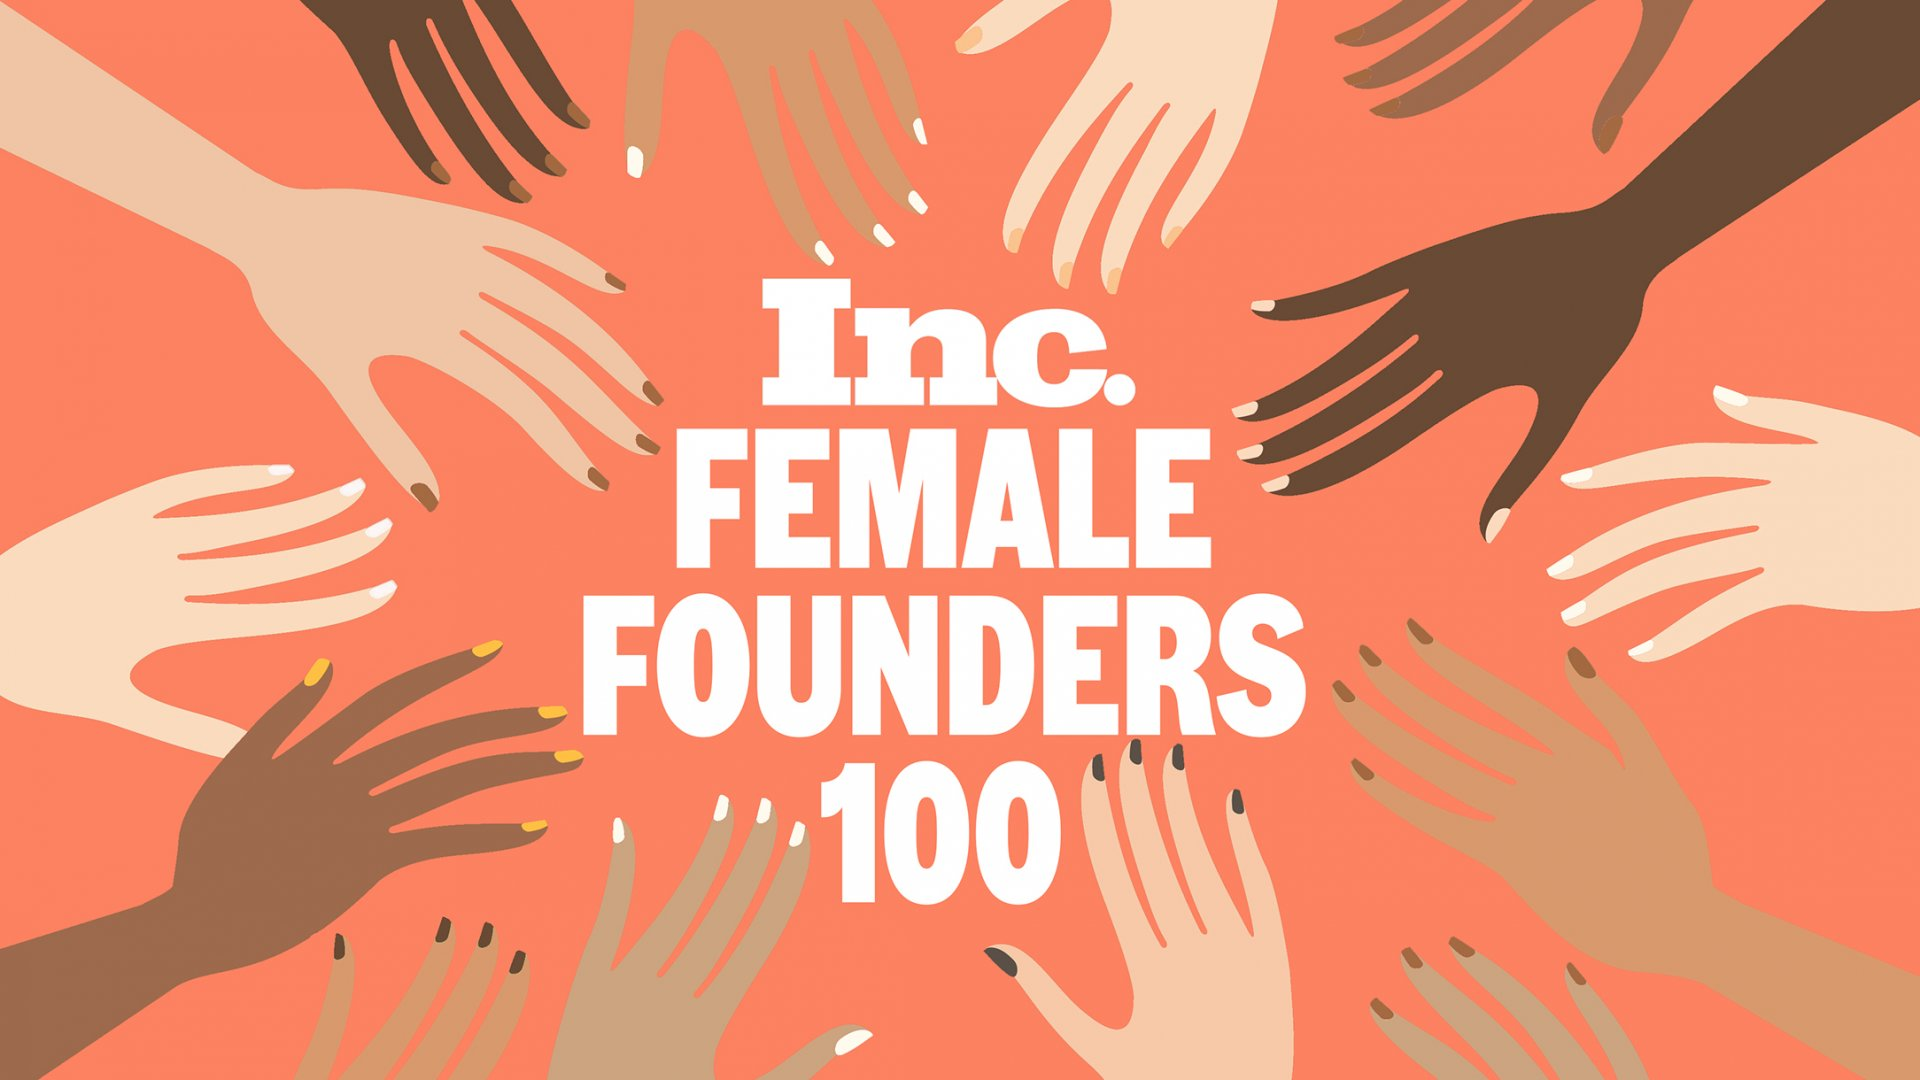 Nominations Are Open for Inc.'s 2020 Female Founders 100--Apply Here!